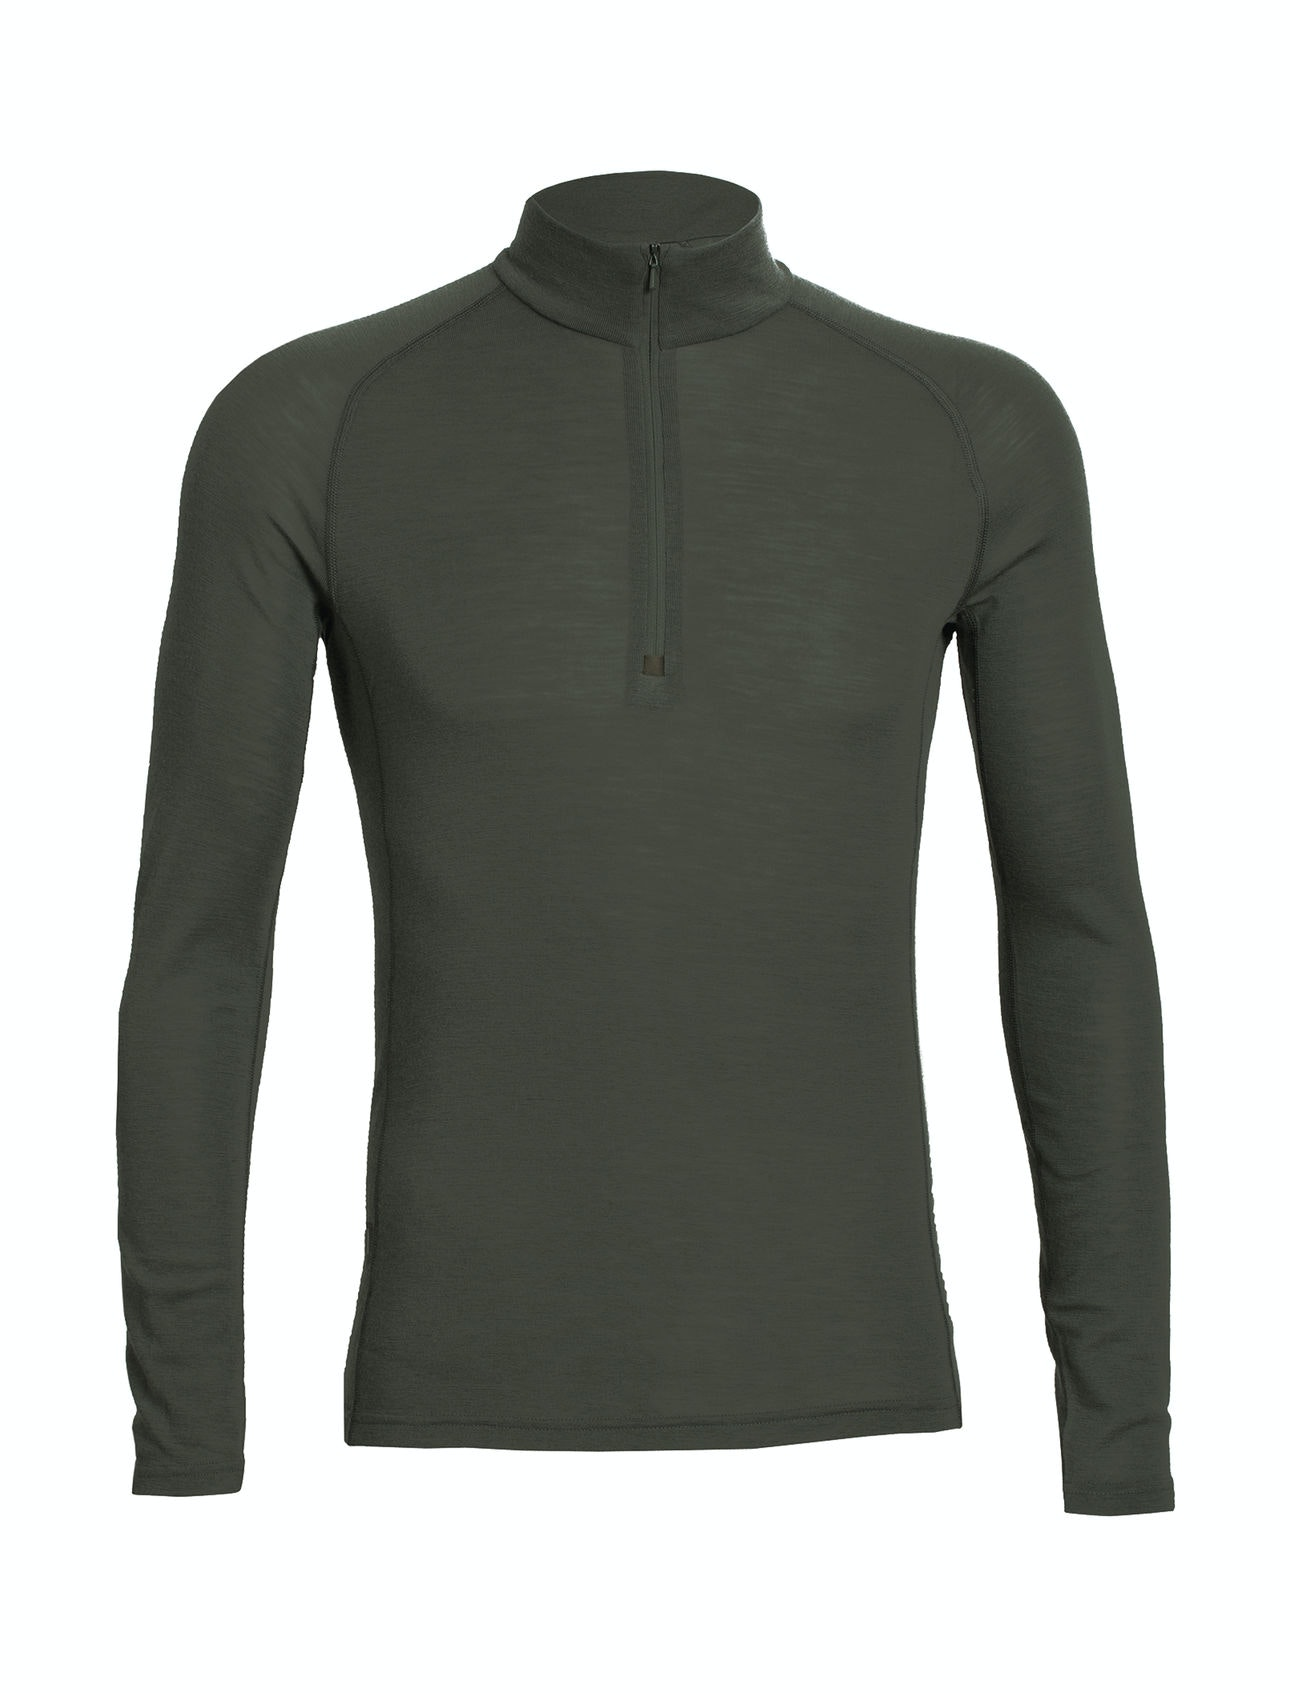 Men's Everyday Long-Sleeve Half-Zip, Cargo